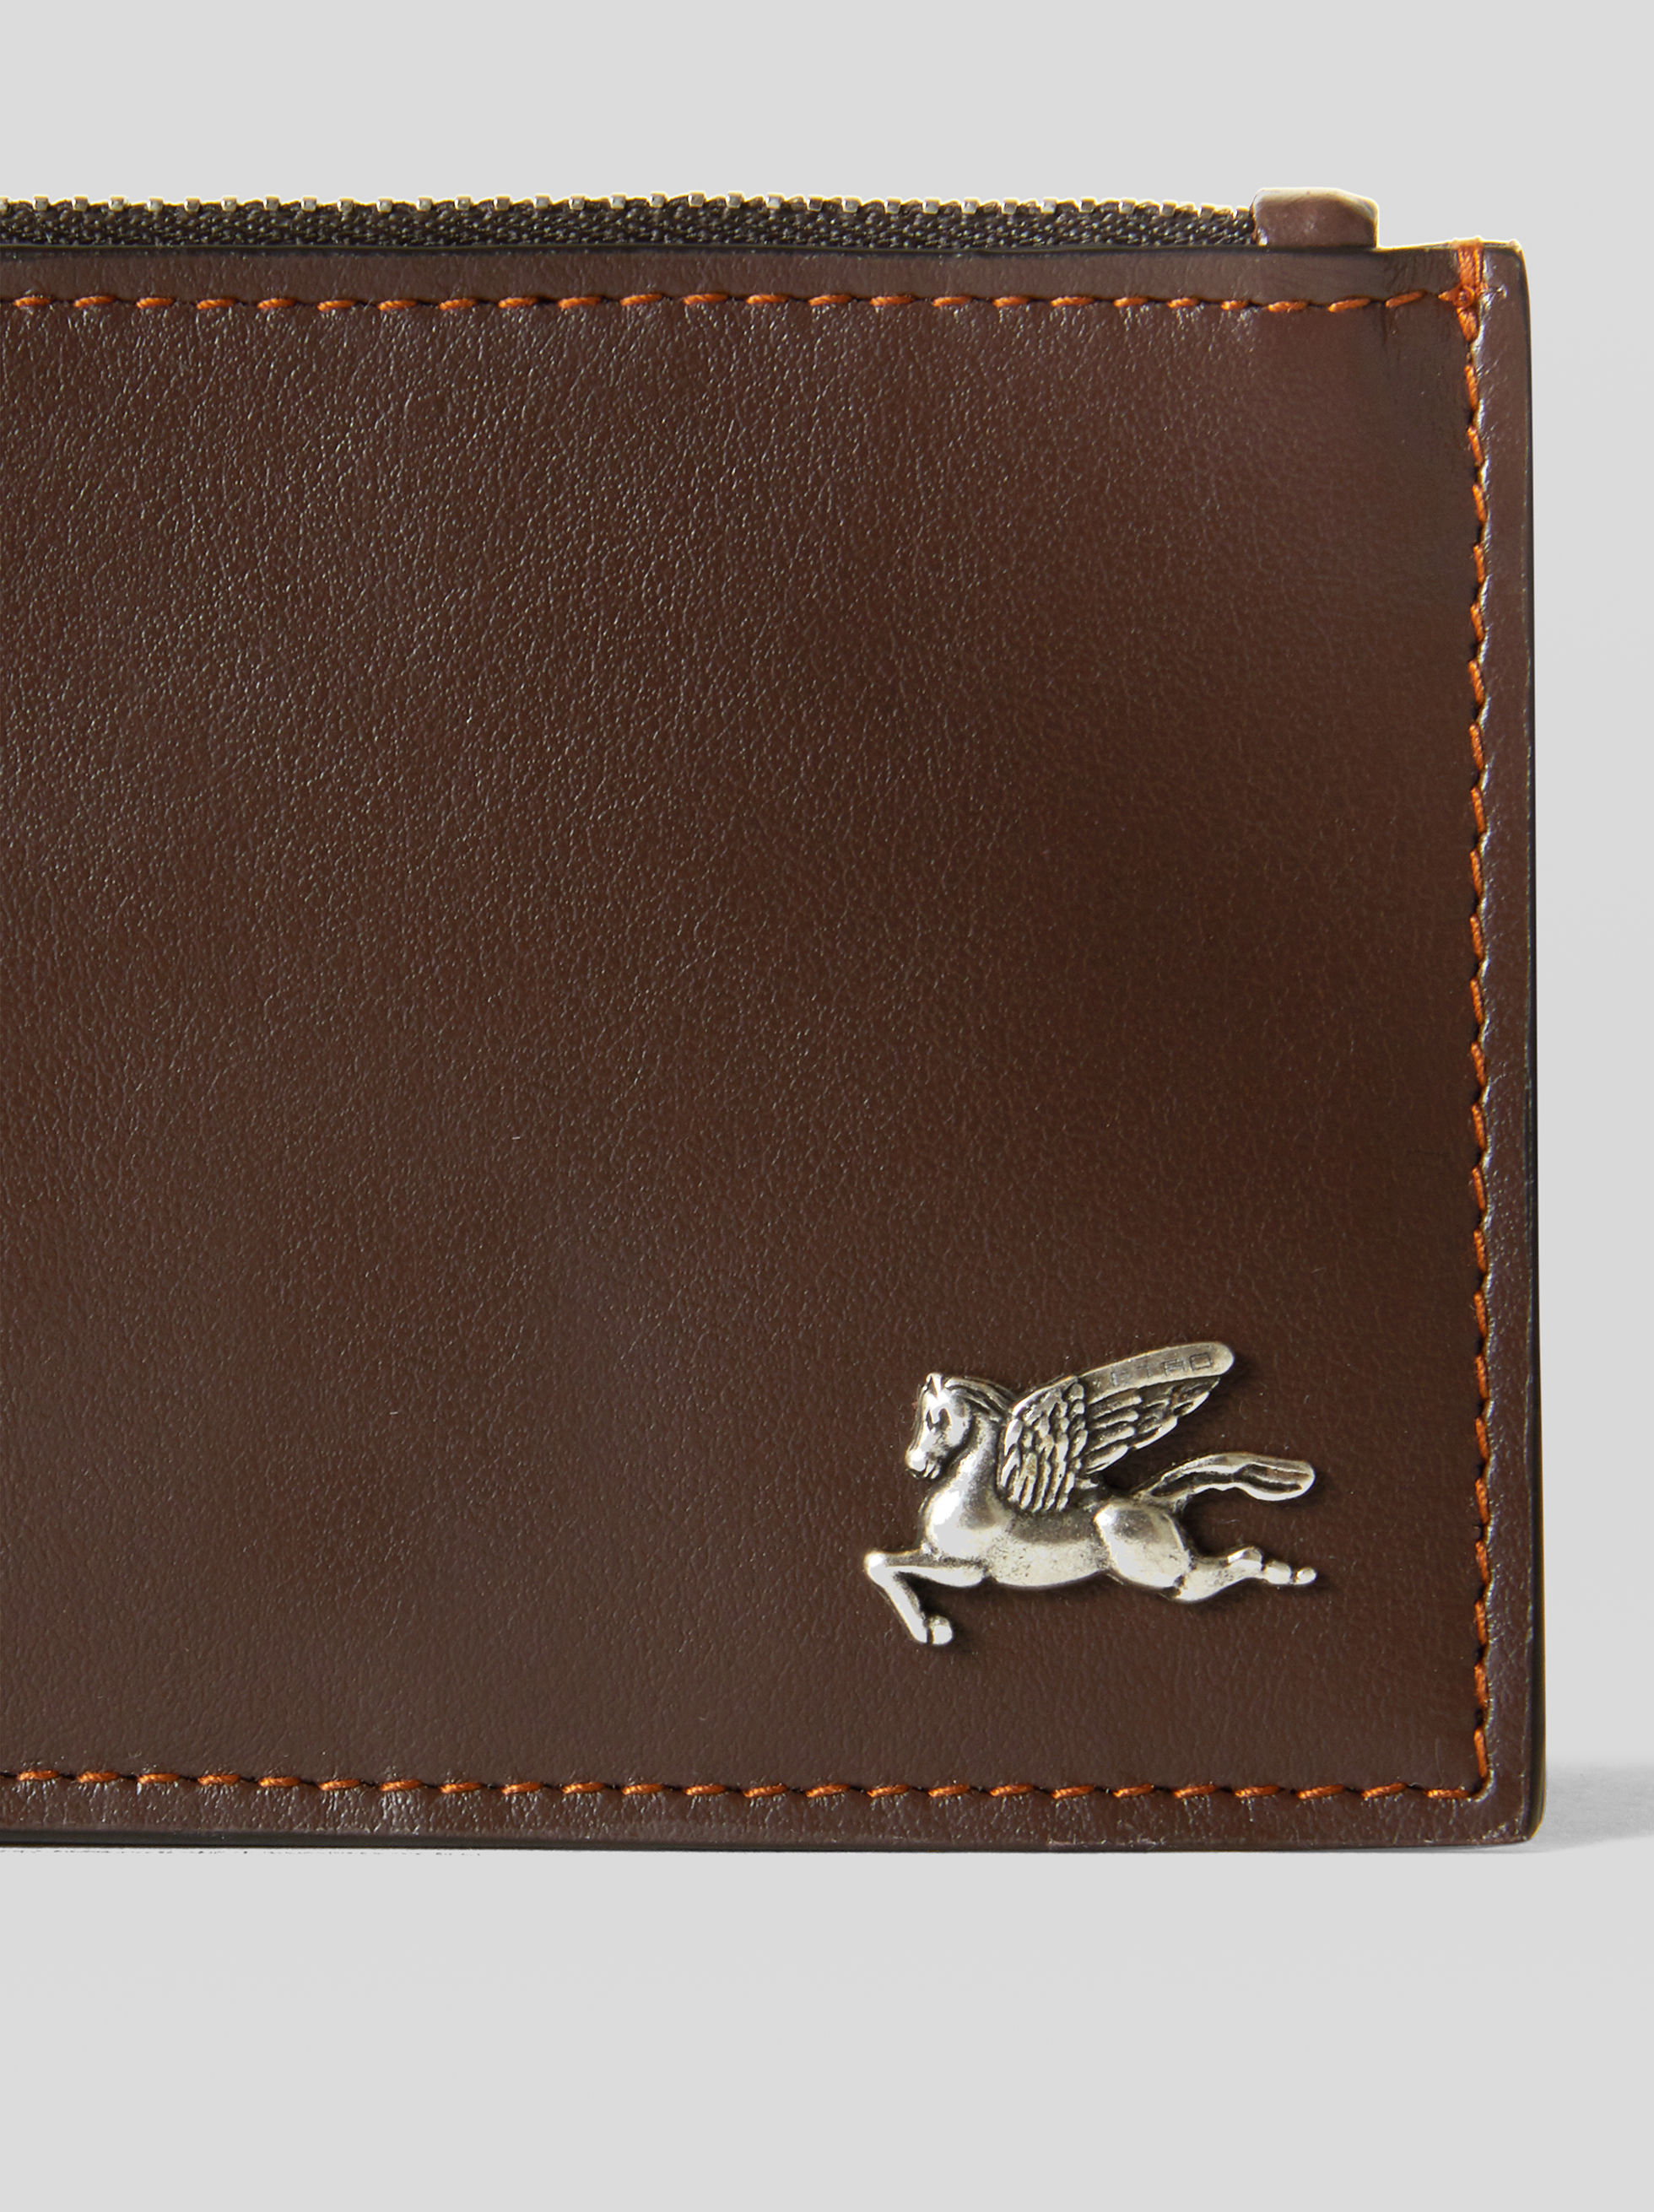 CARD HOLDER WITH PEGASO